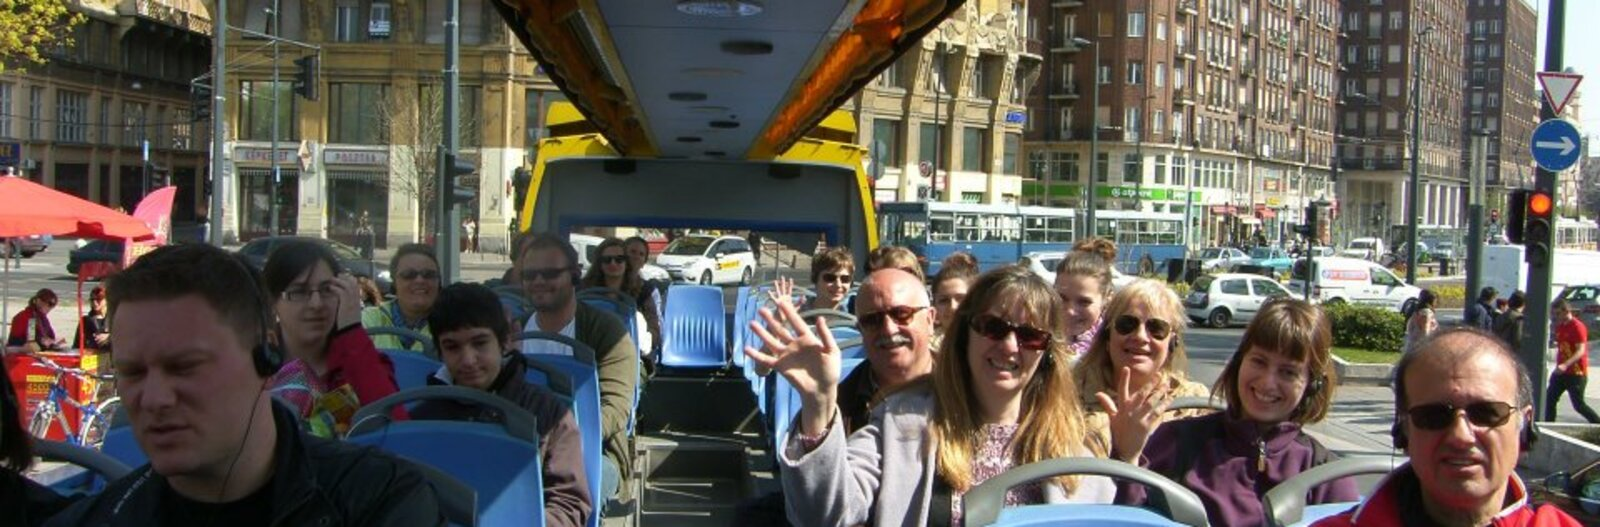 Sightsee differently with Budapest's alternative tours